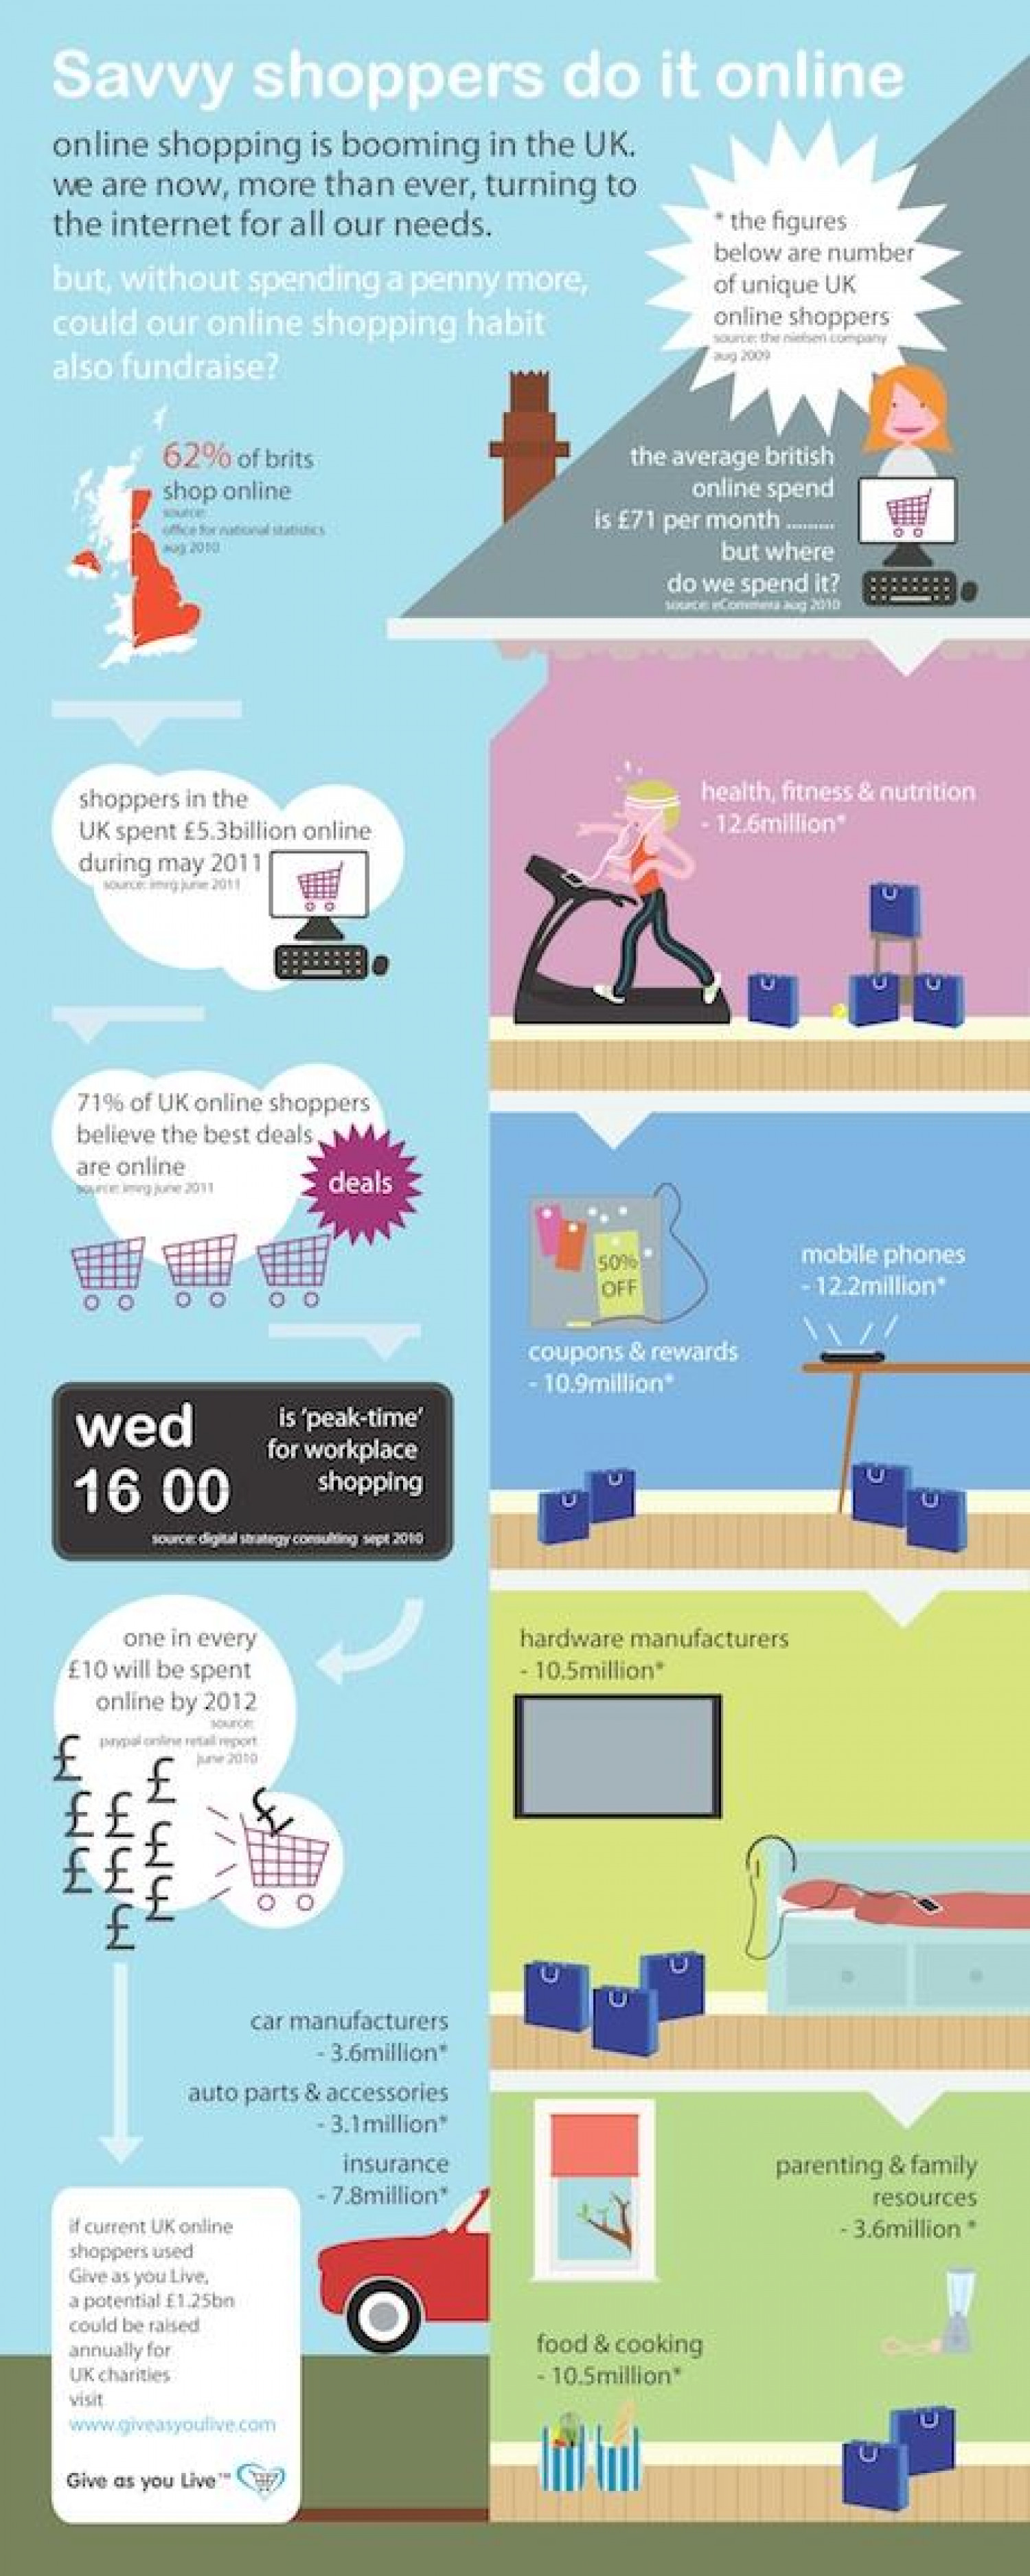 Profile of an Online Shopper Infographic